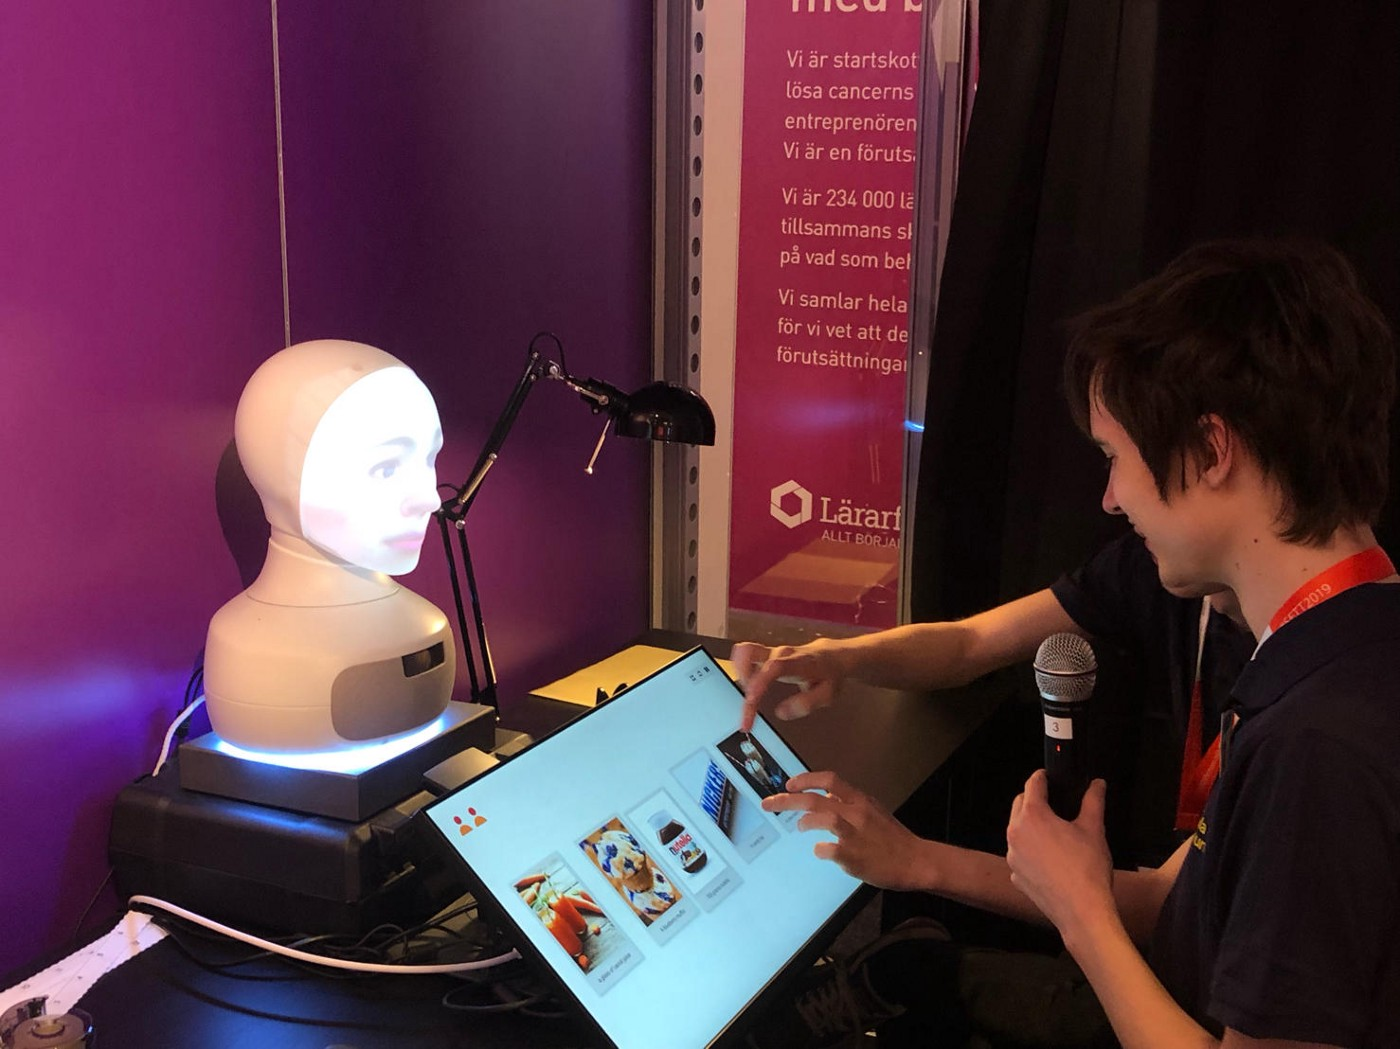 A robot in every classroom: Furhat's vision for education